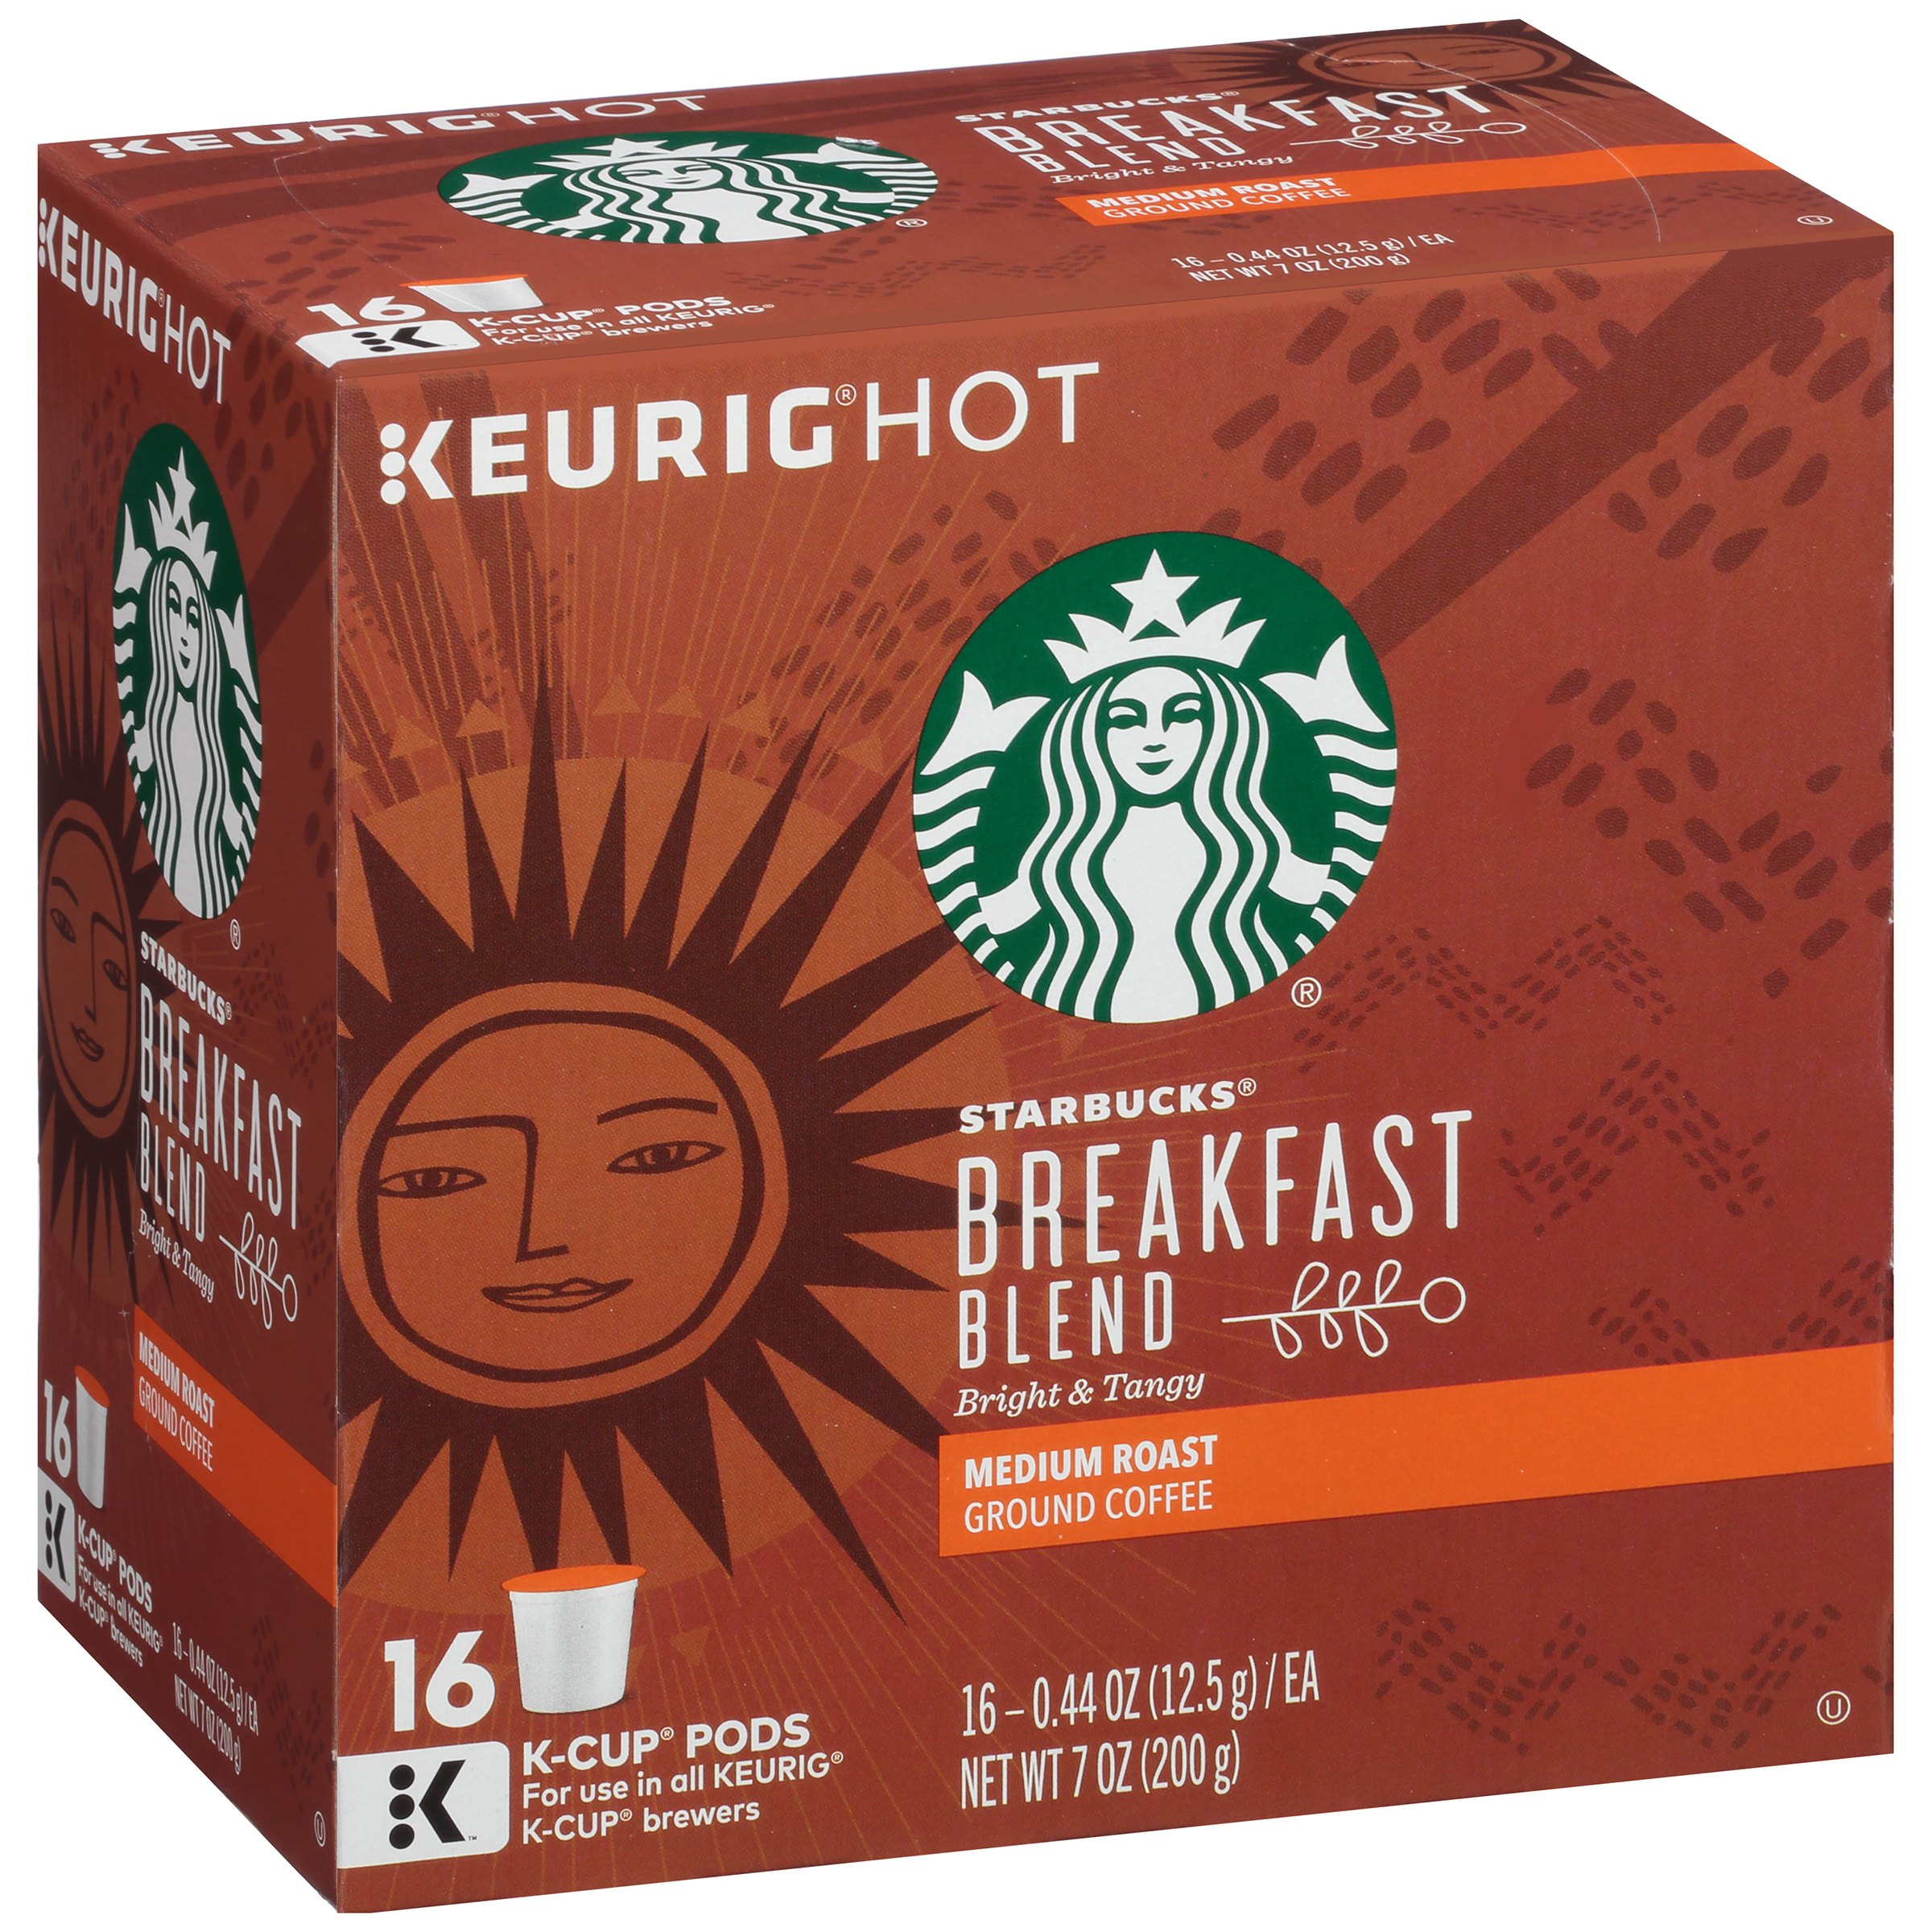 Starbucks® Breakfast Blend Medium Ground Coffee K-Cups 16 ct Box